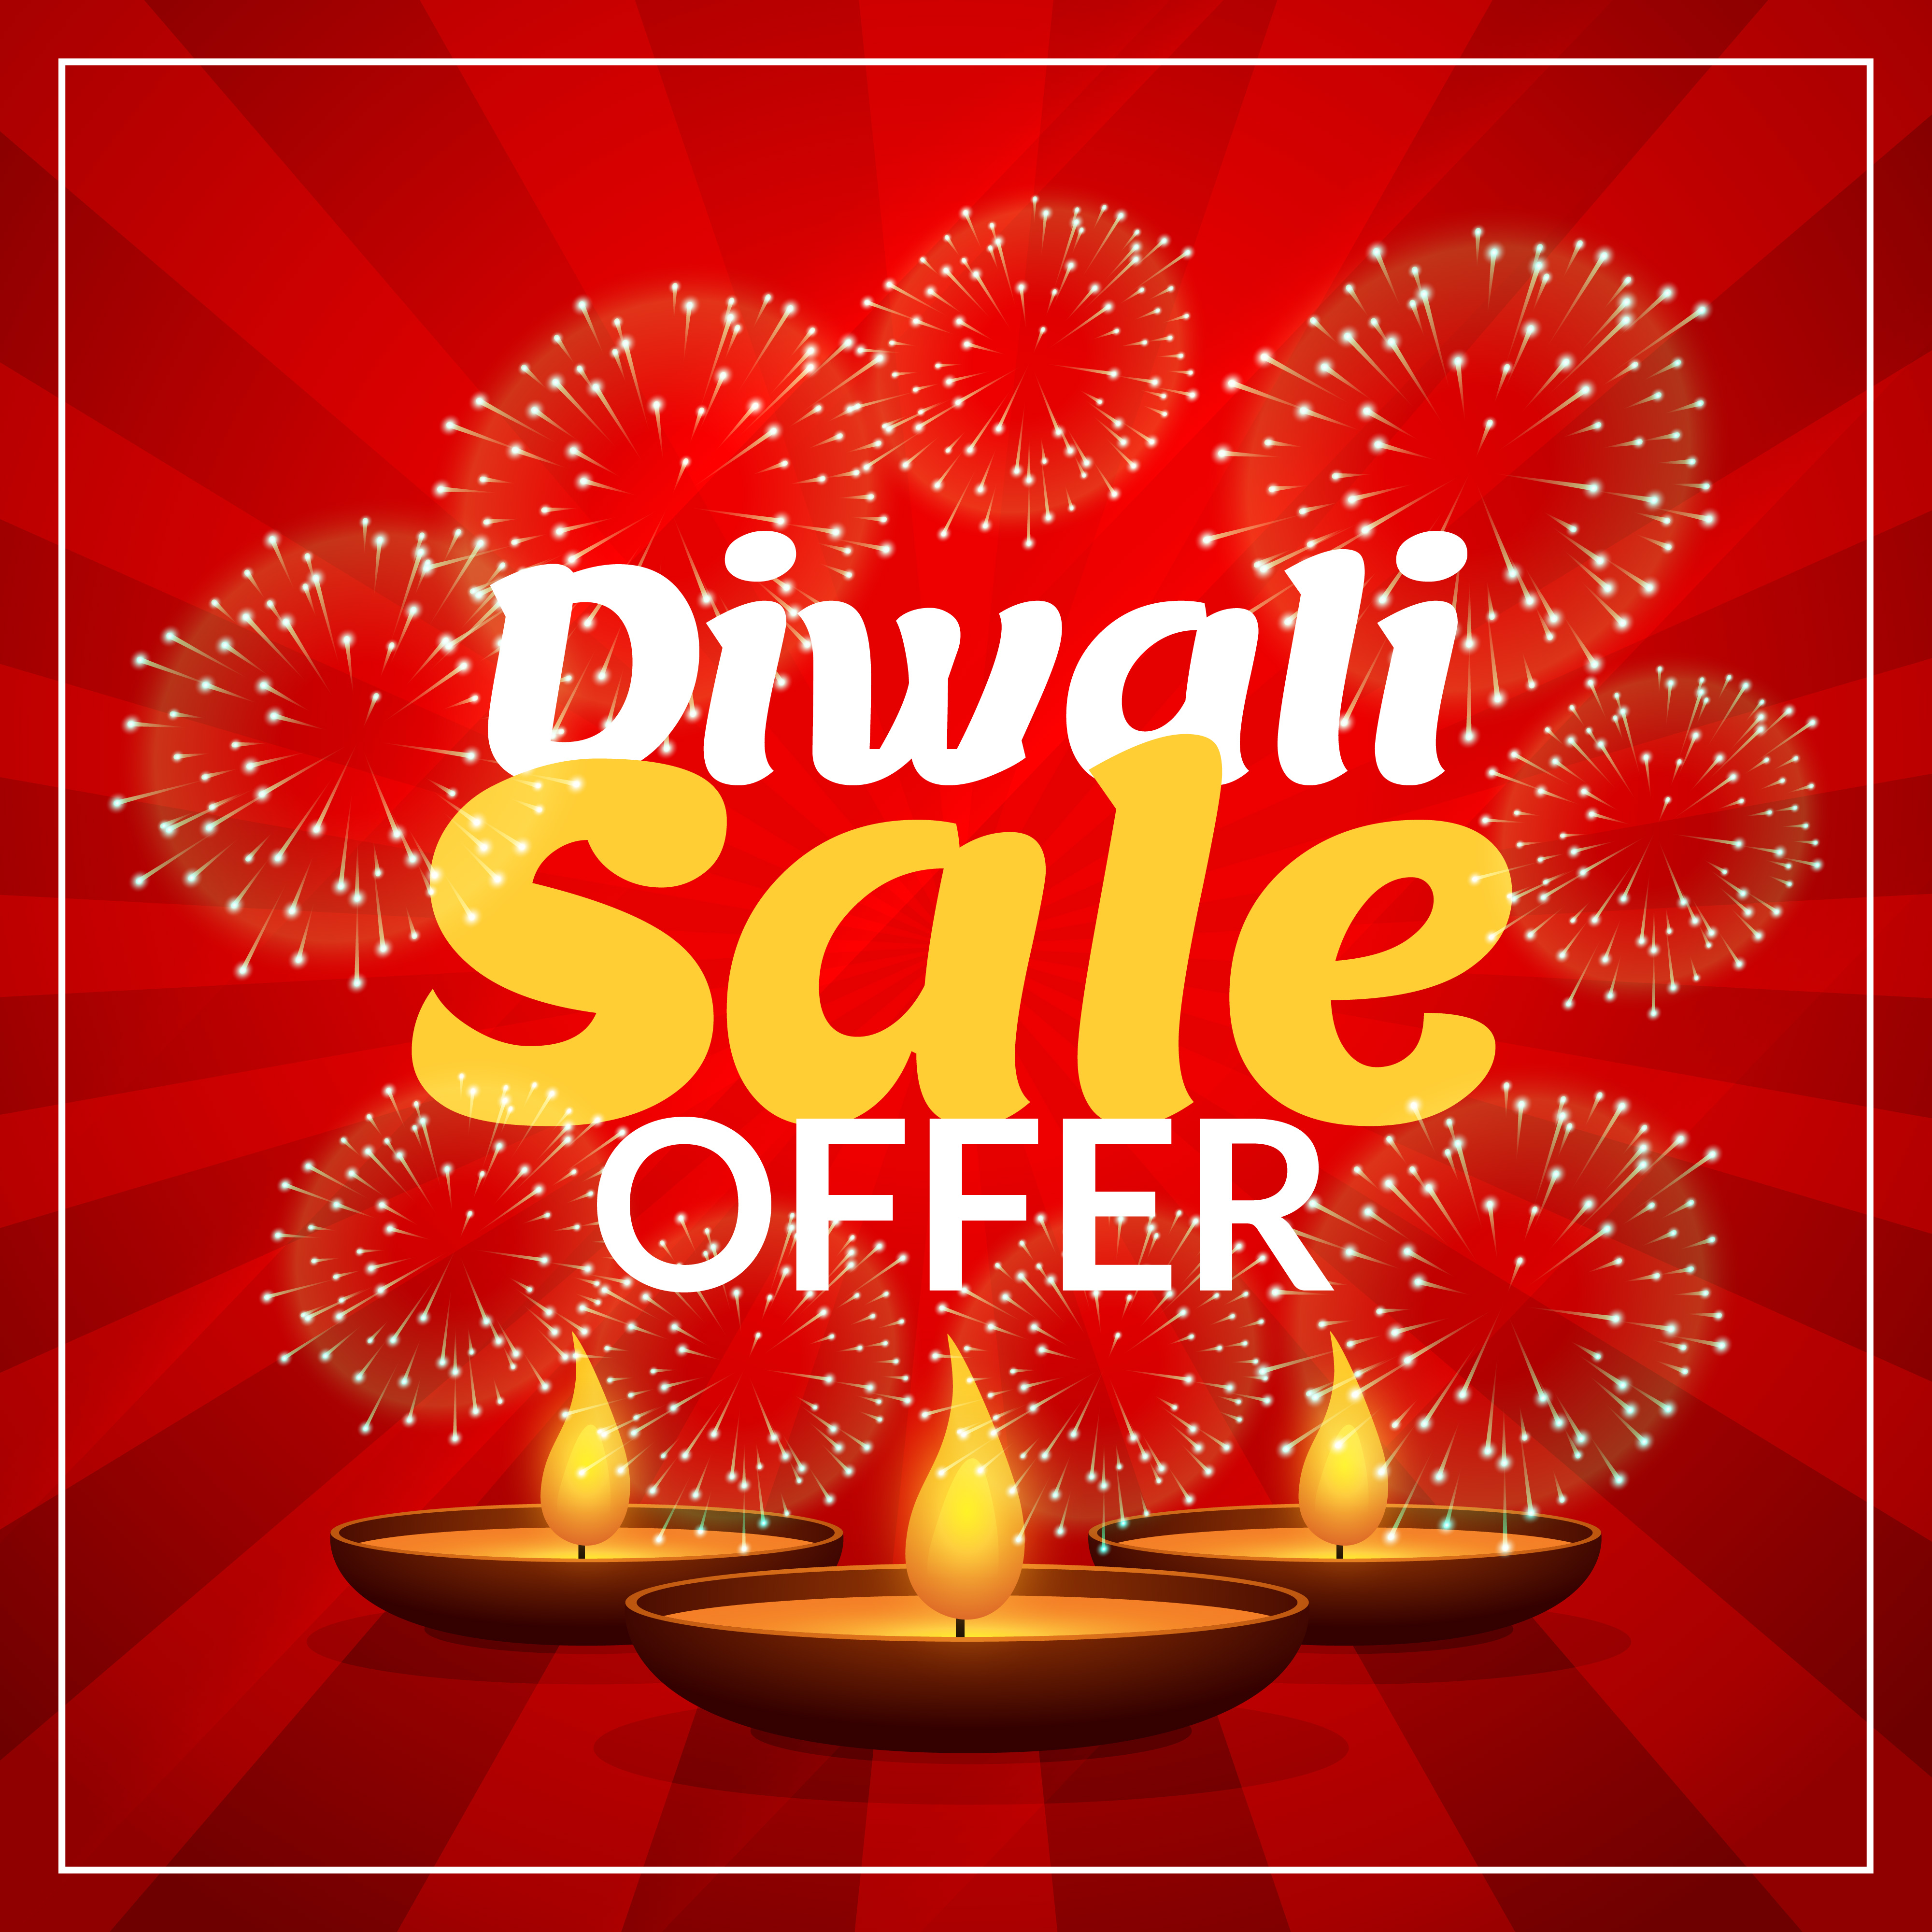 diwali sale offer discount marketing template with diya and fire download free vector art stock graphics images